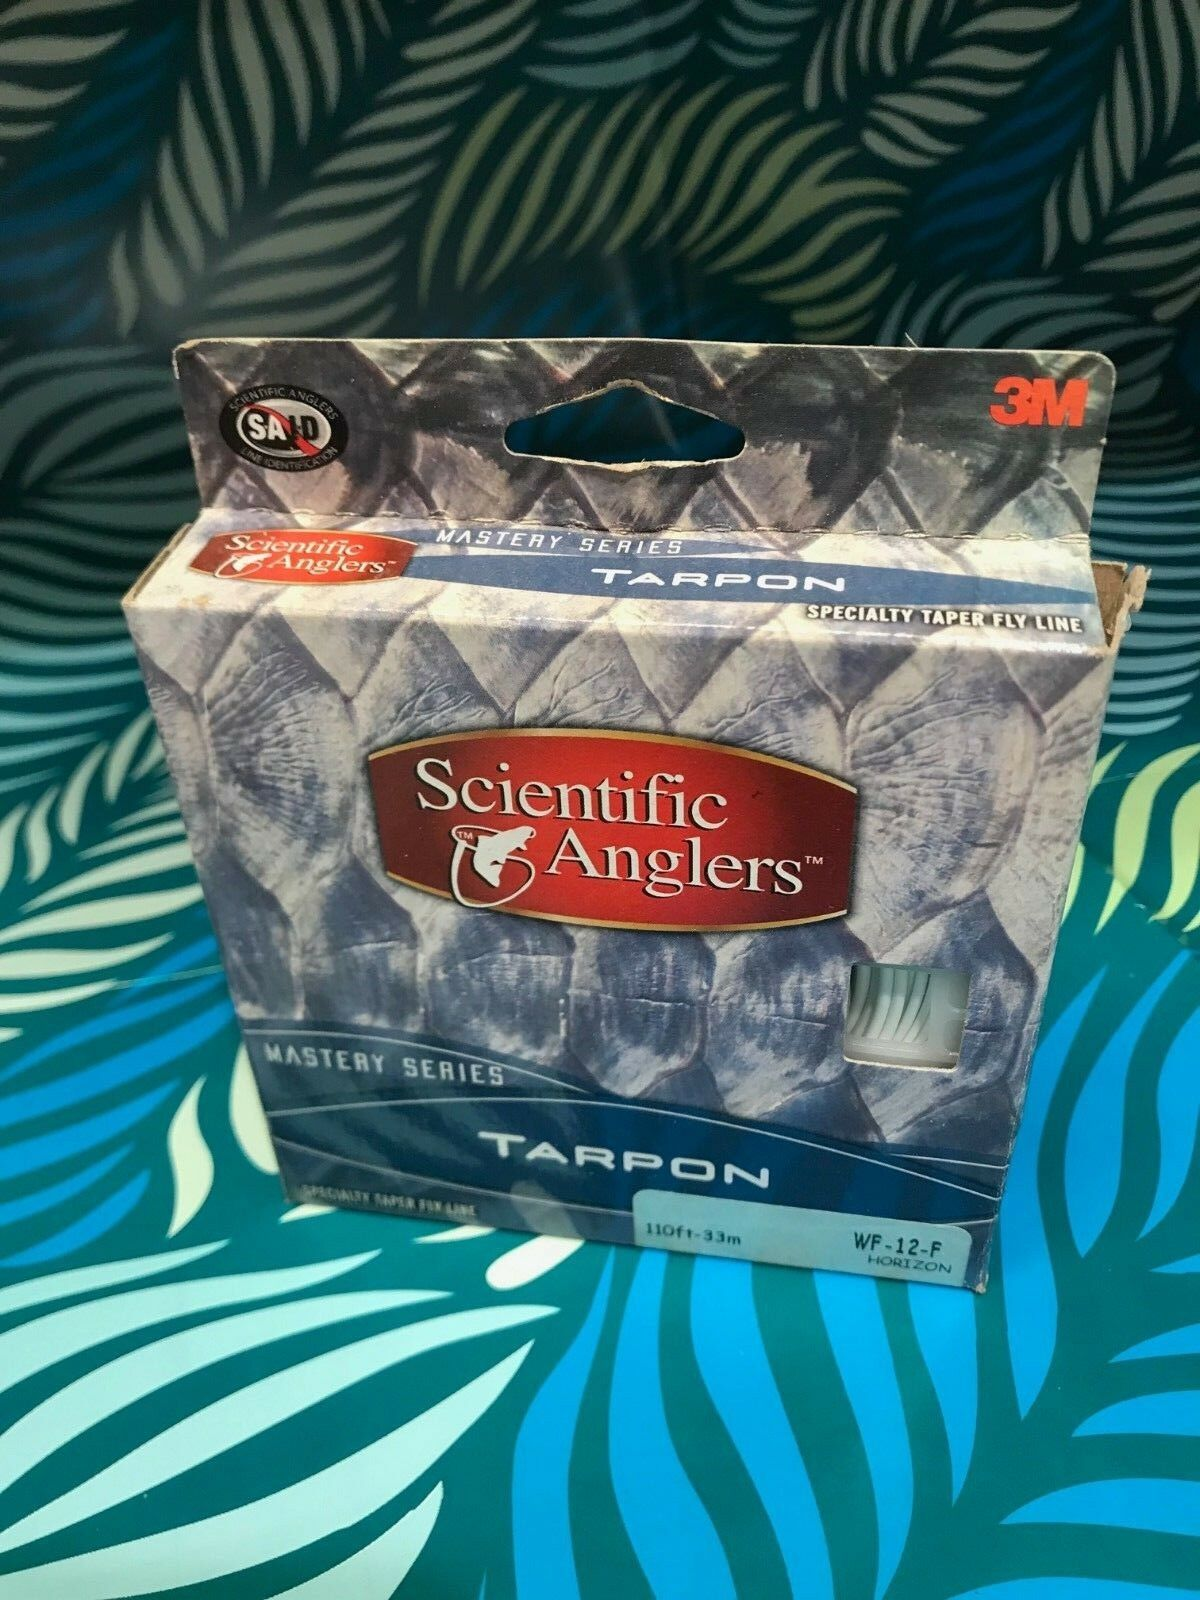 Scientific Angler - Mastery  Series - Tarpon WF-12-F  cheap and top quality